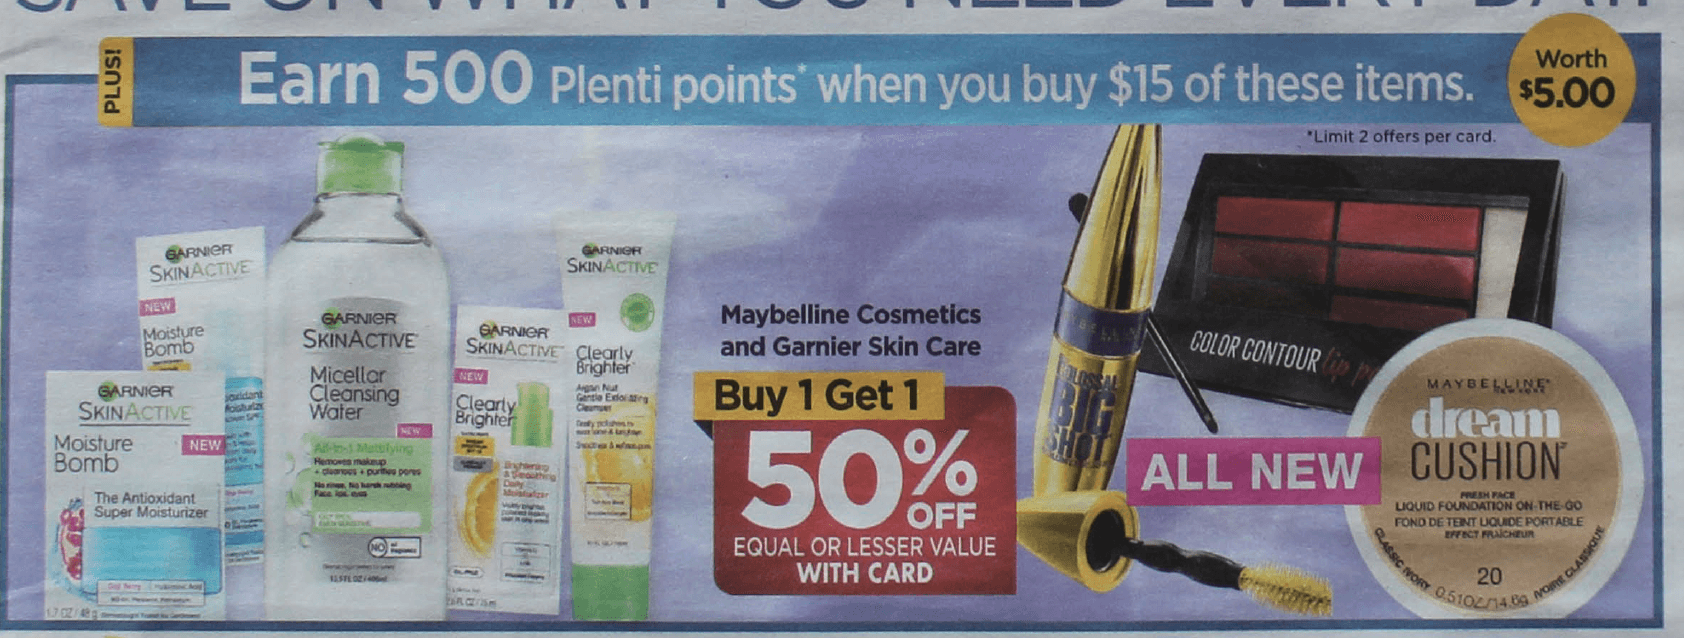 d8f4b33ffbd ... Rite Aid will have Garnier Skin Care and Maybelline Cosmetics on sale  Buy One Get One 50% Off. Also, when you spend $15 on Garnier Skin Care and  ...